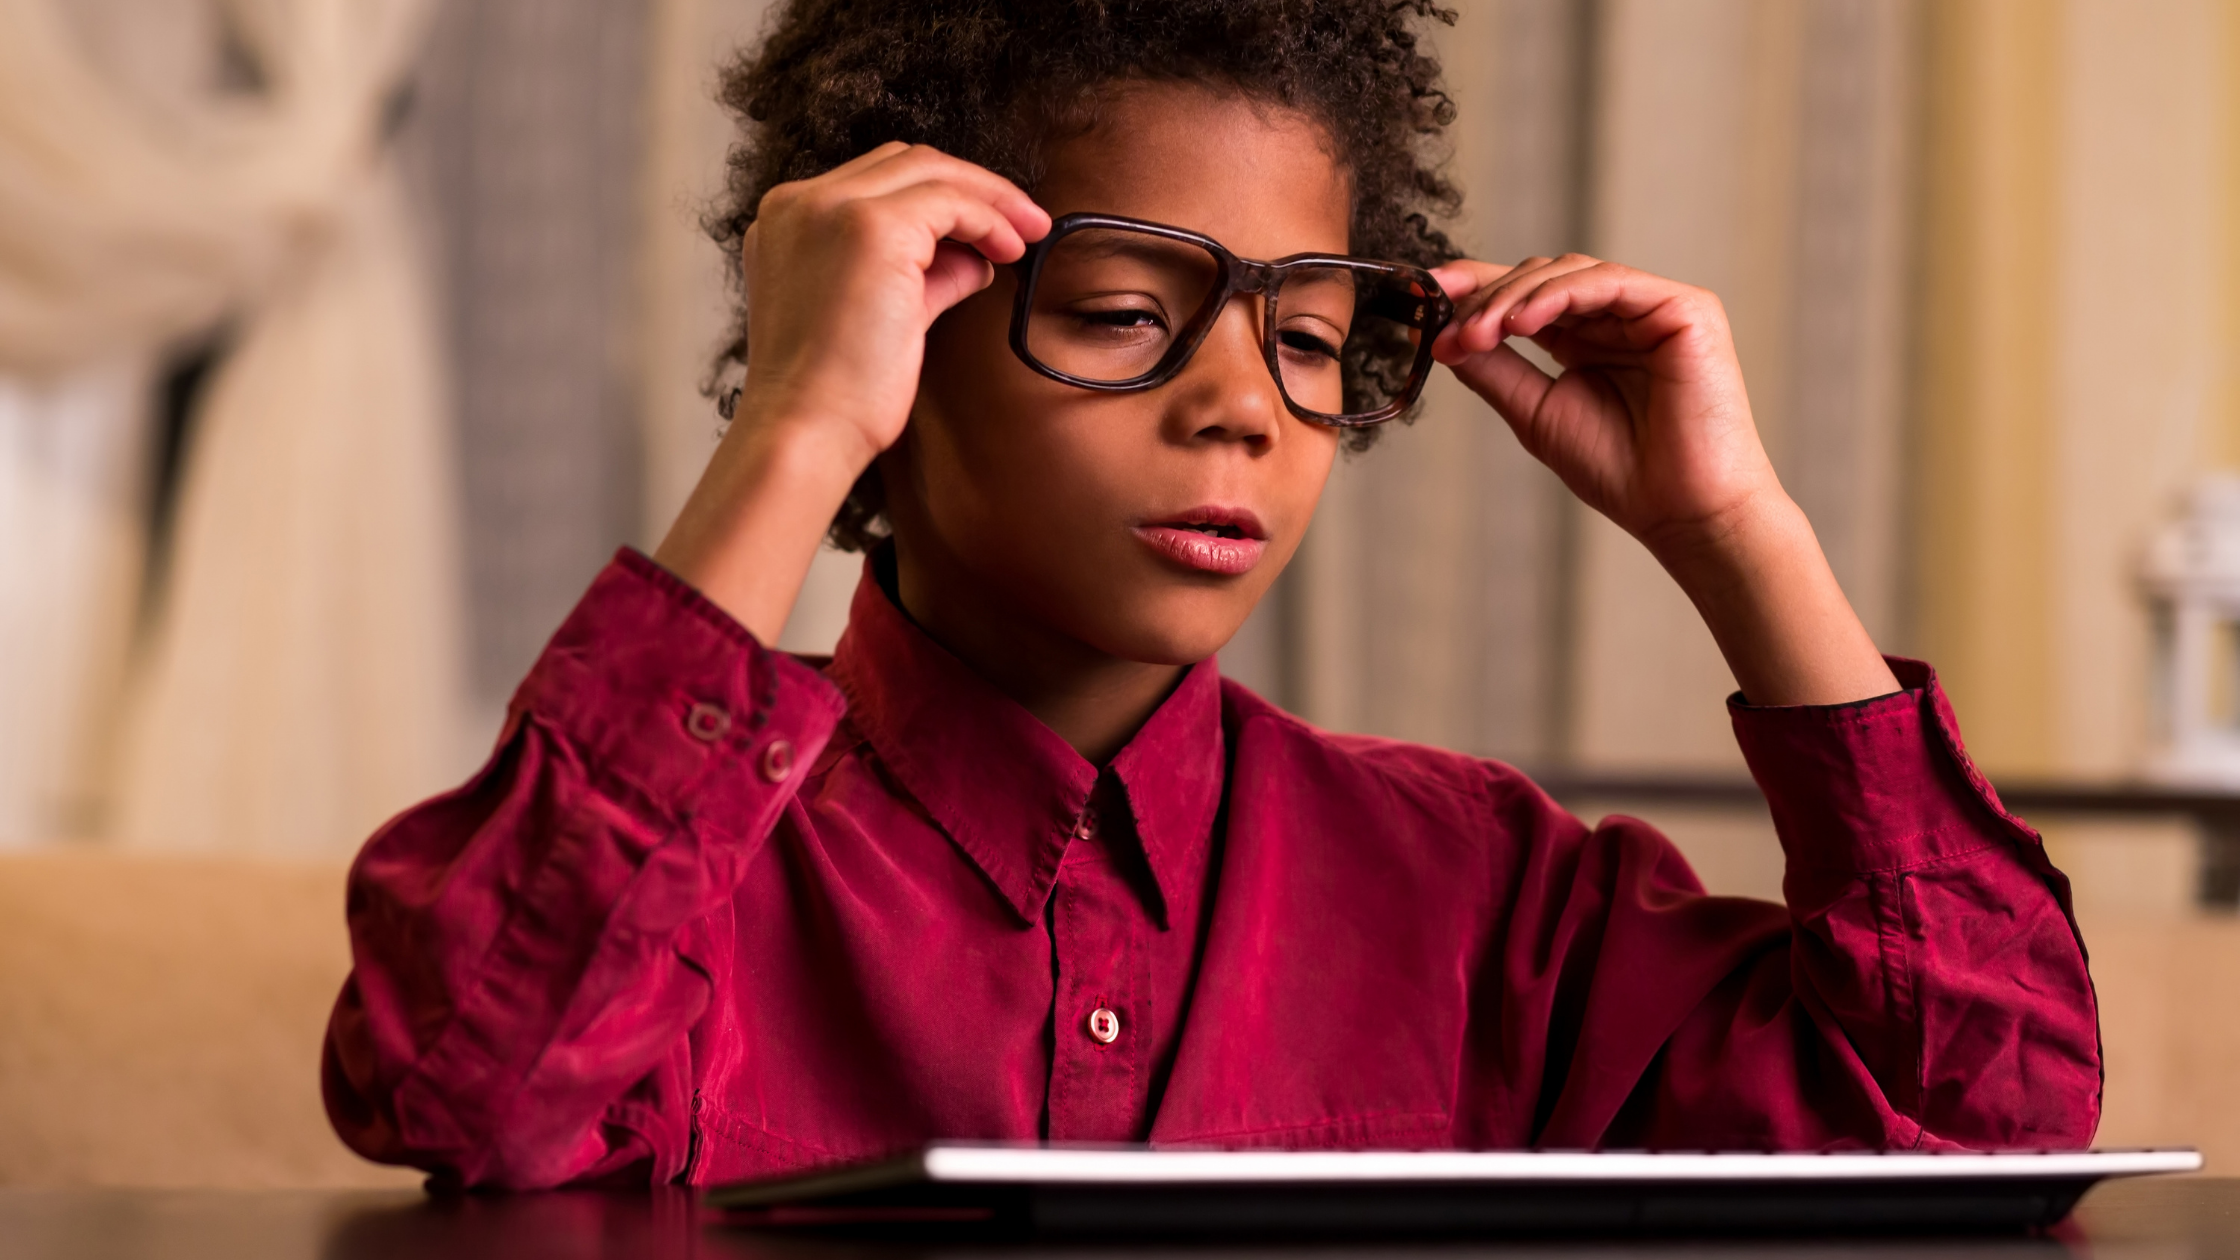 child with glasses looking at smart tablet